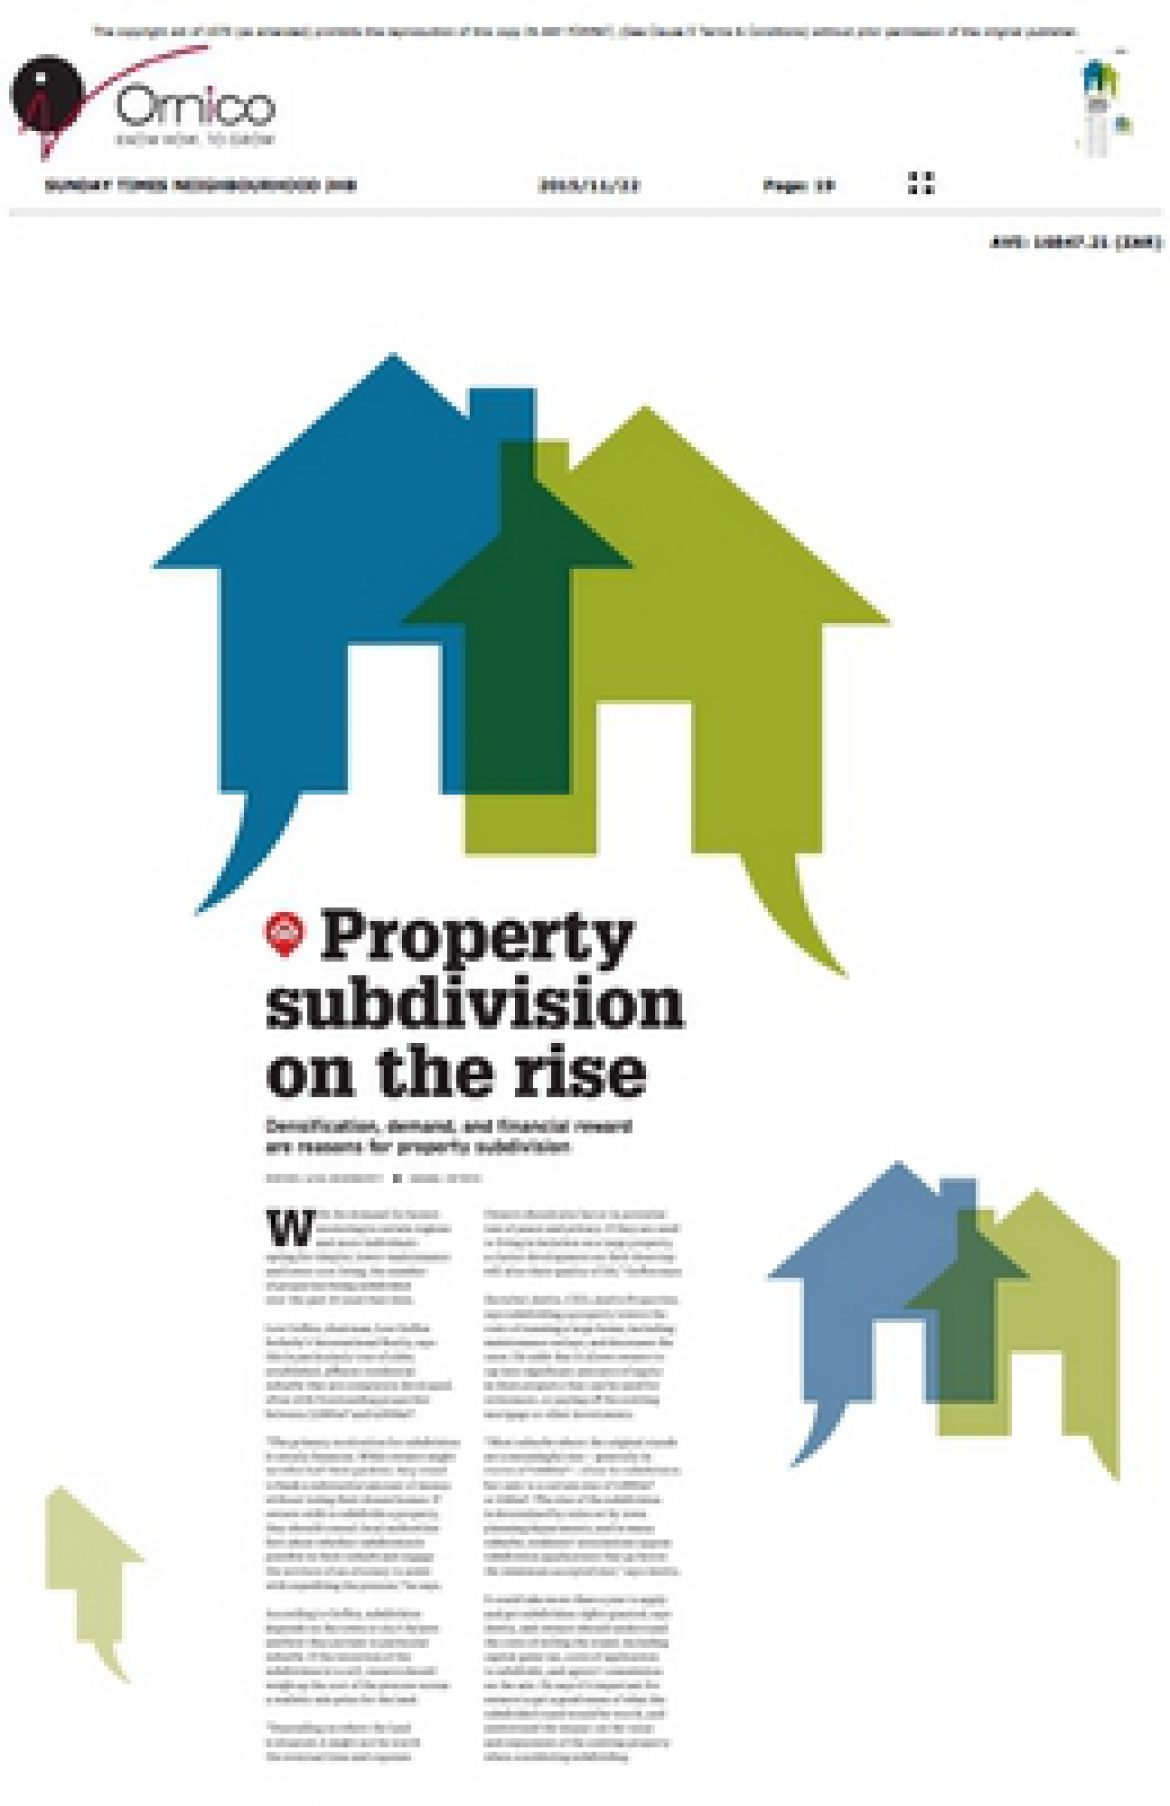 Property subdivision on the rise